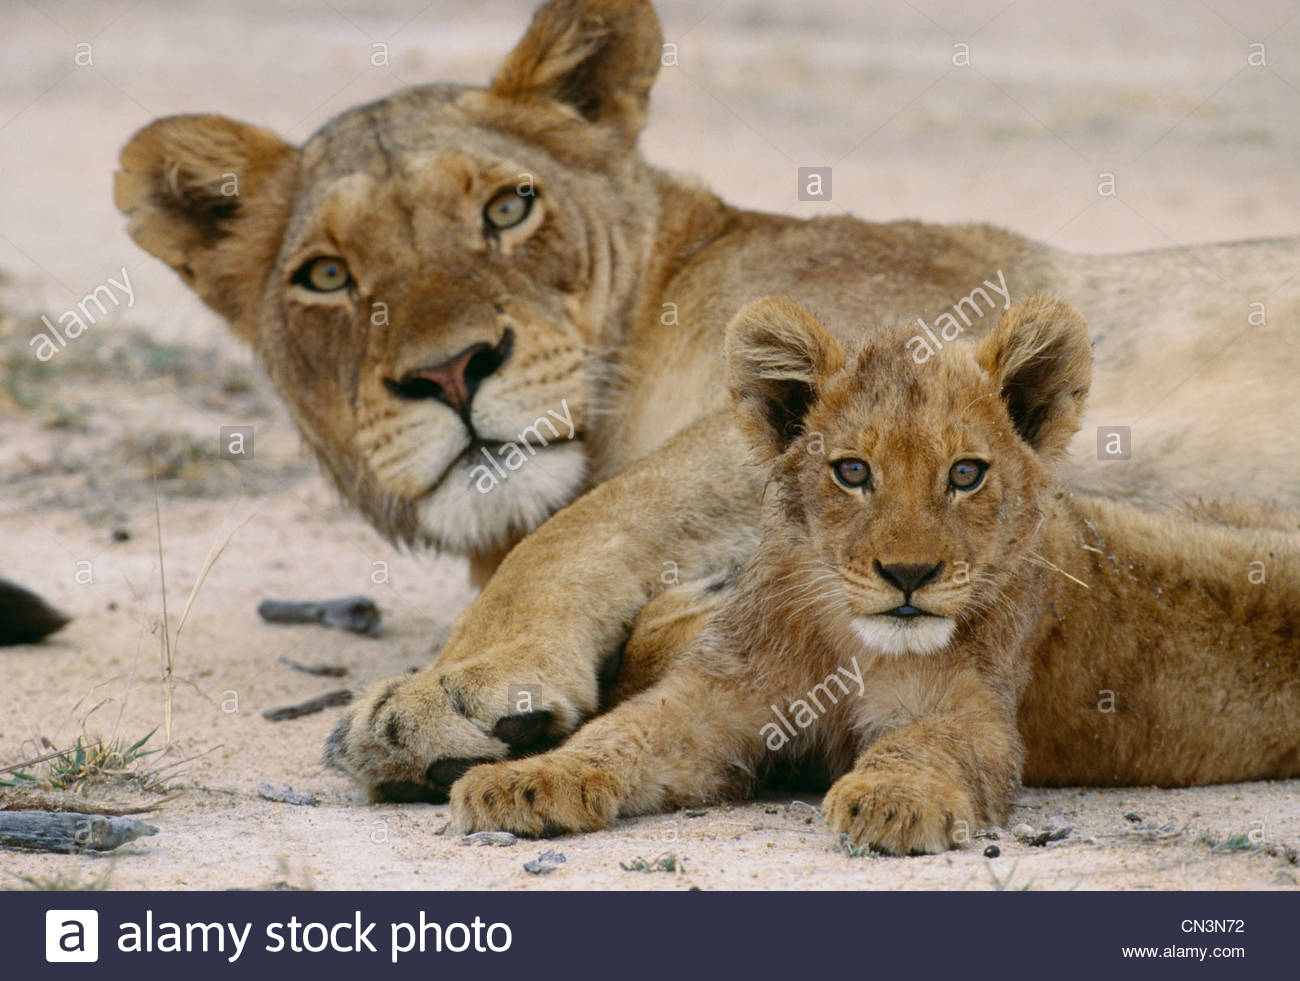 African lion and cub, Kruger National Park, South Africa - Stock Image